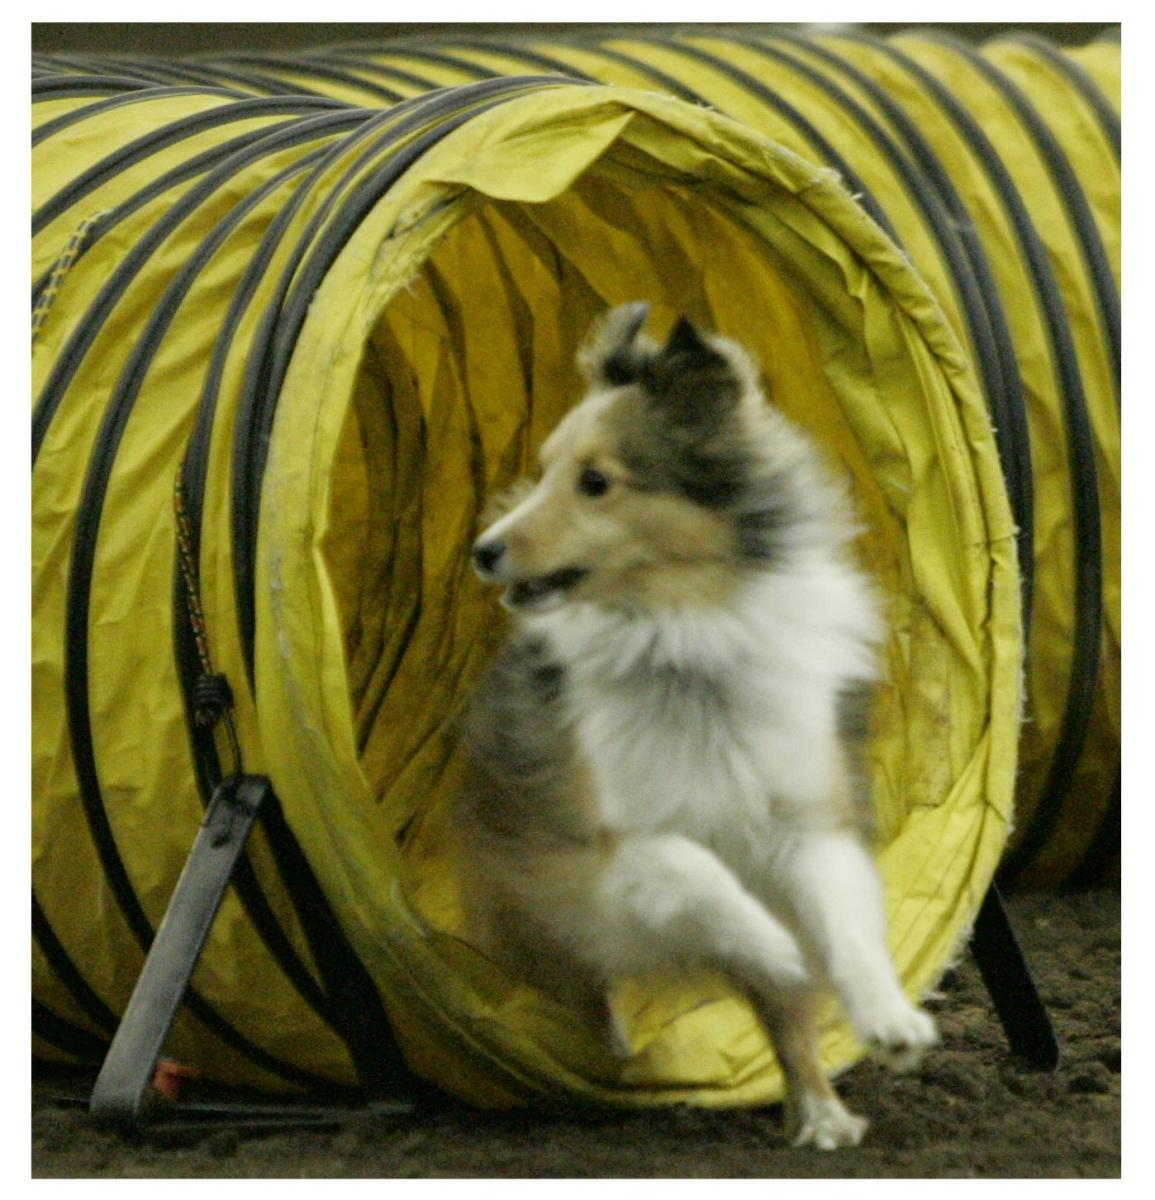 AKC Agility Titles: What Do the Letters Following a Dog's Name Mean?